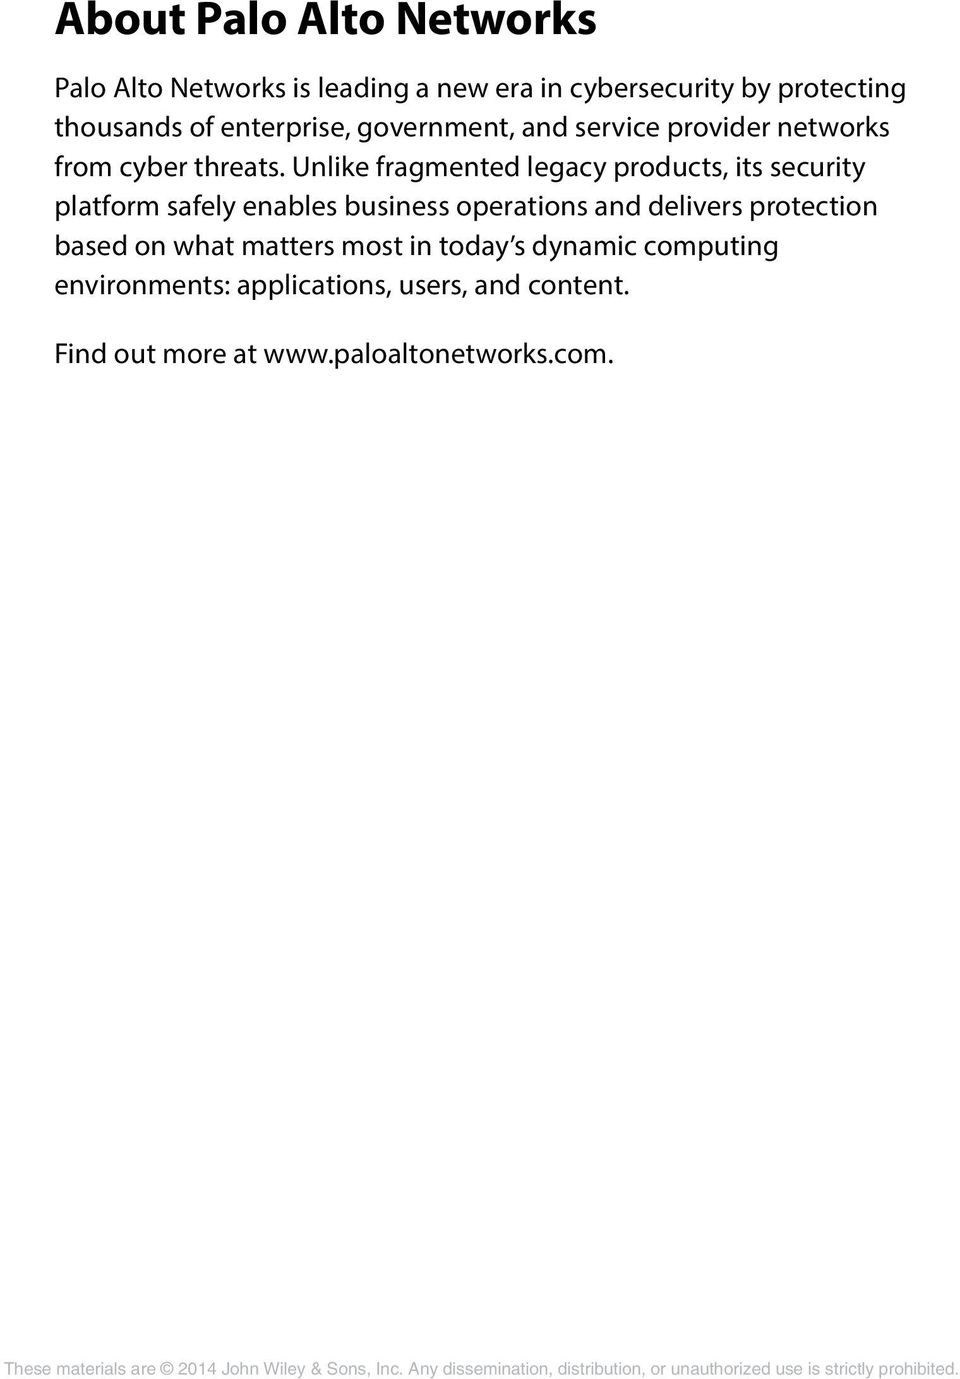 About Palo Alto Networks - PDF